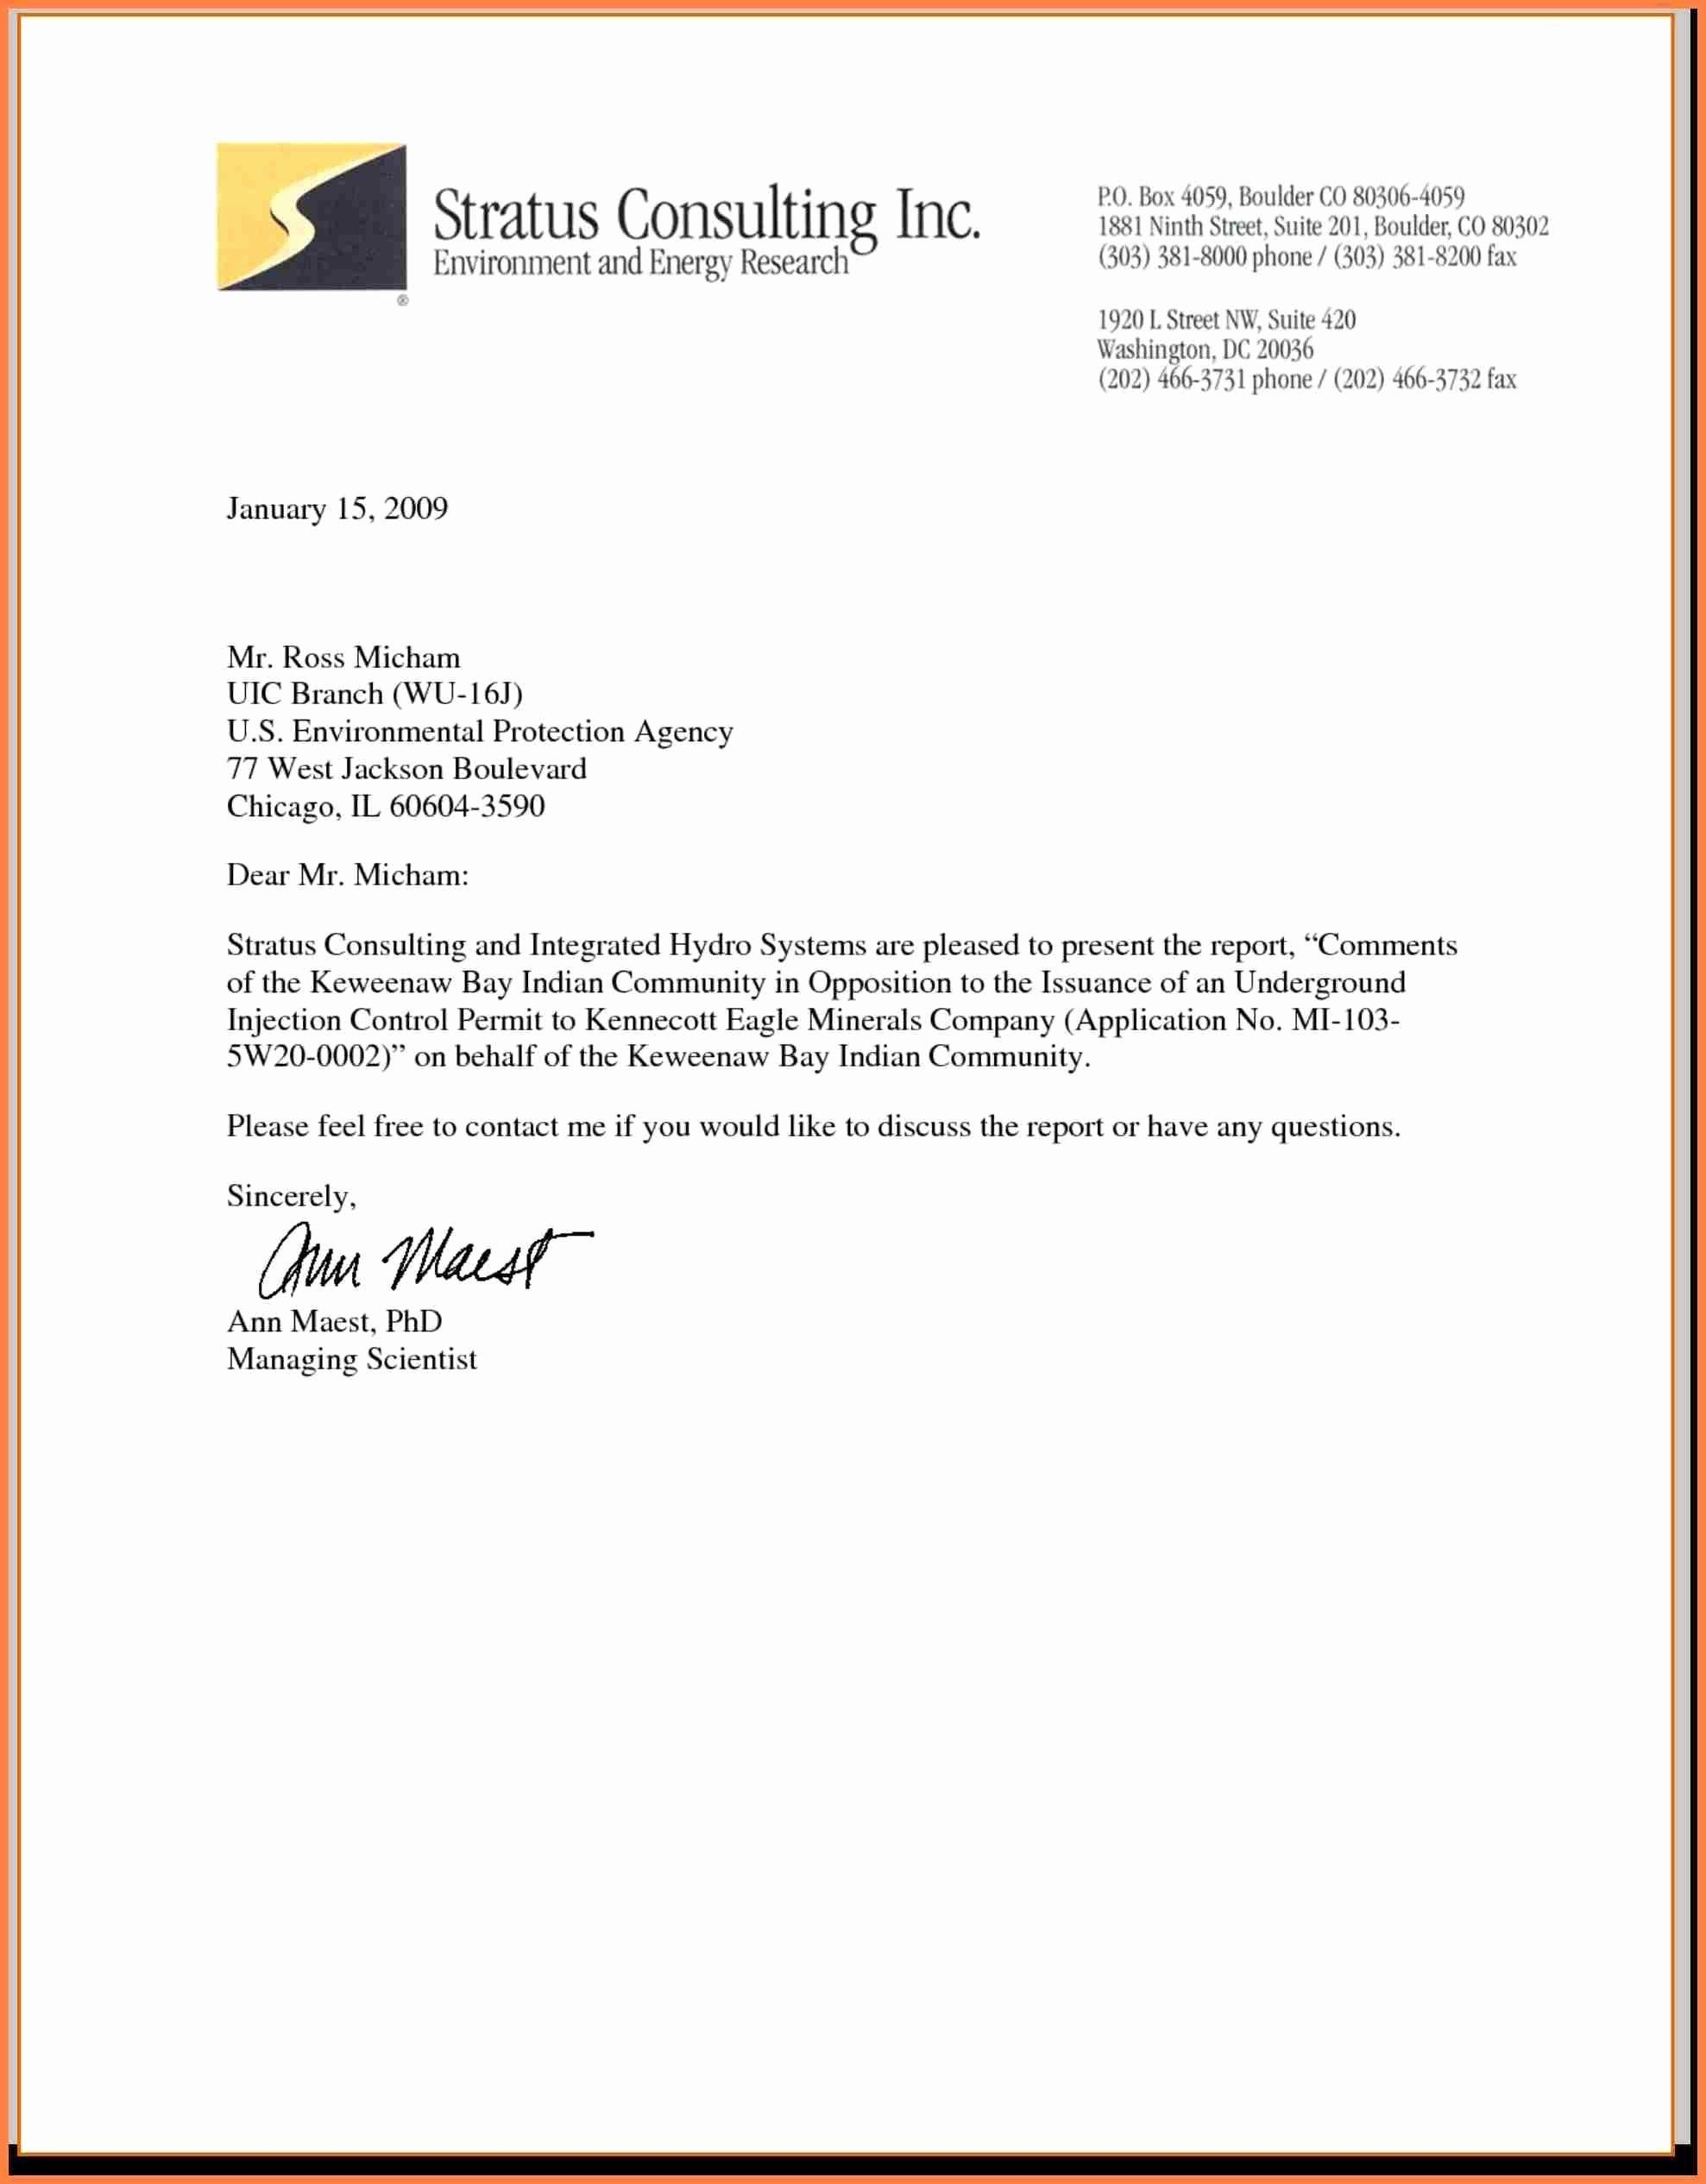 Download Best Of Letterhead Template Word Online At Https Gprime